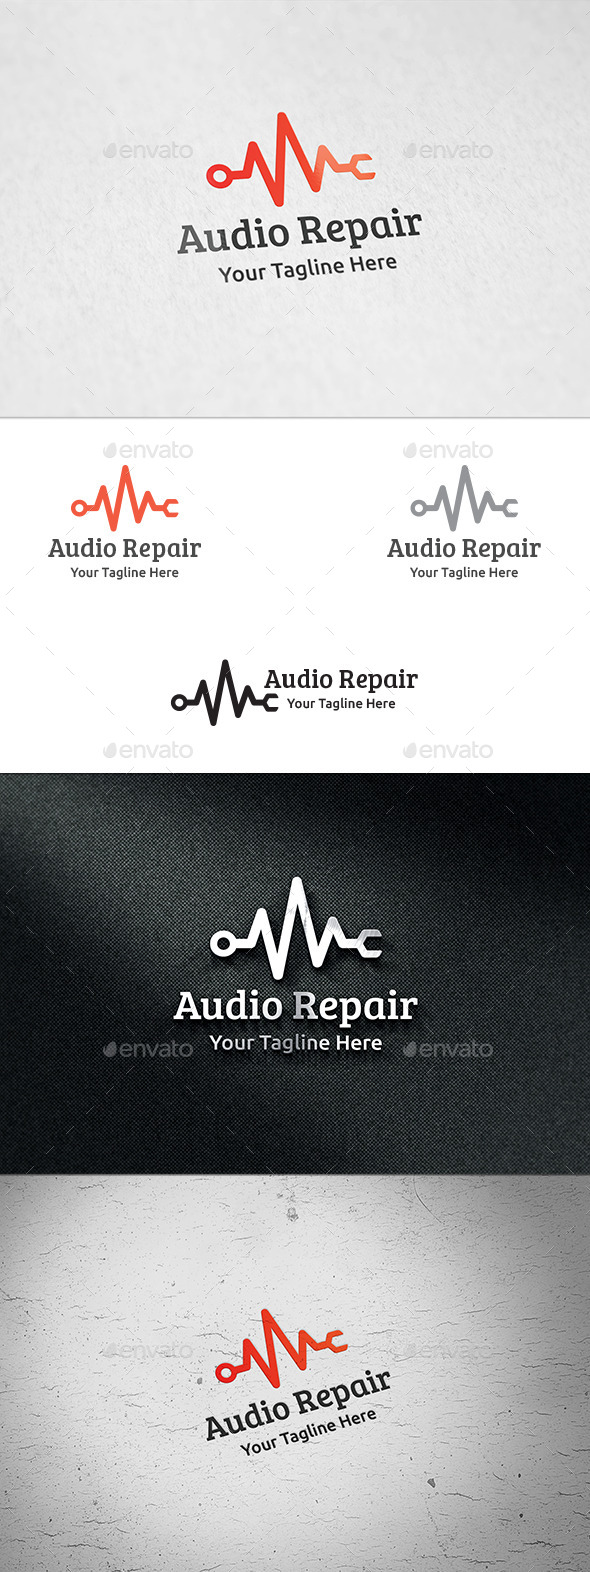 GraphicRiver Audio Repair Logo Template 8974332